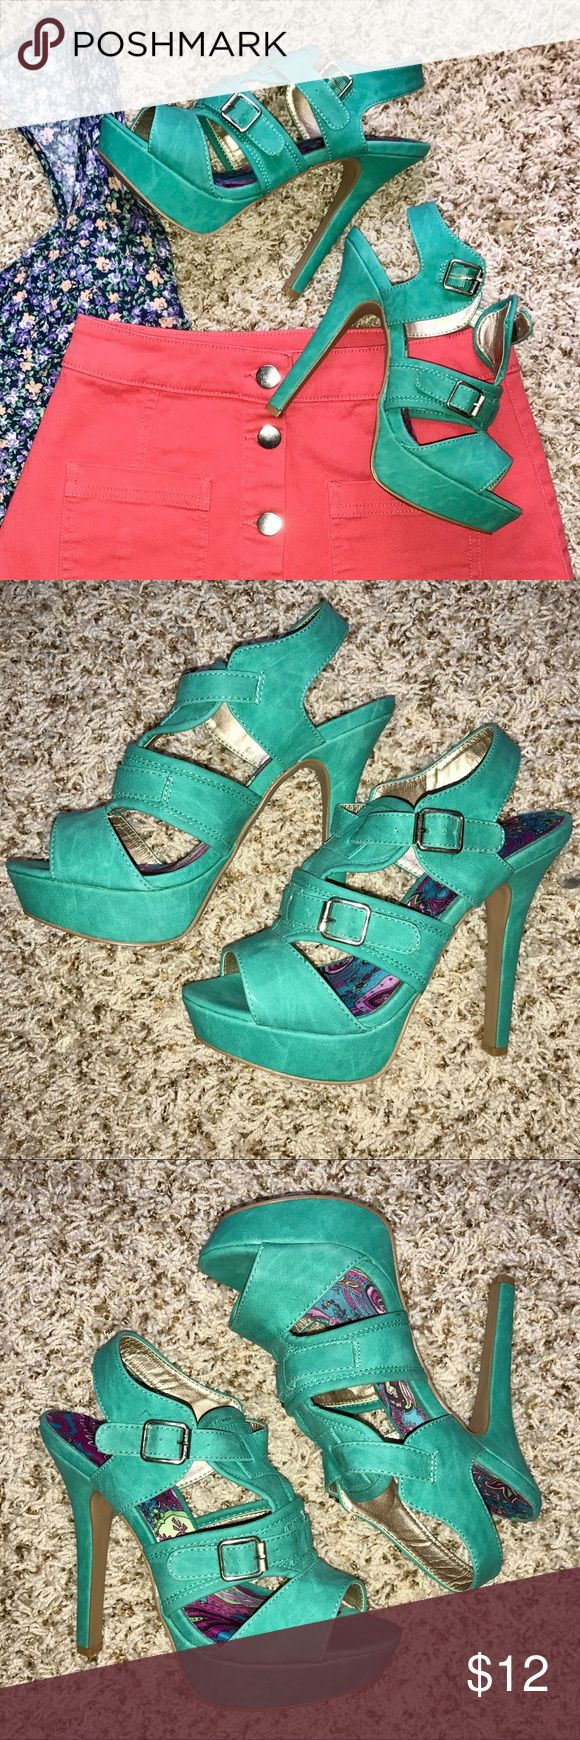 """Green Strappy Heels High heeled sandals with straps and buckle details. 4"""" heel. Worn twice. In excellent condition. Charlotte Russe Shoes Heels"""